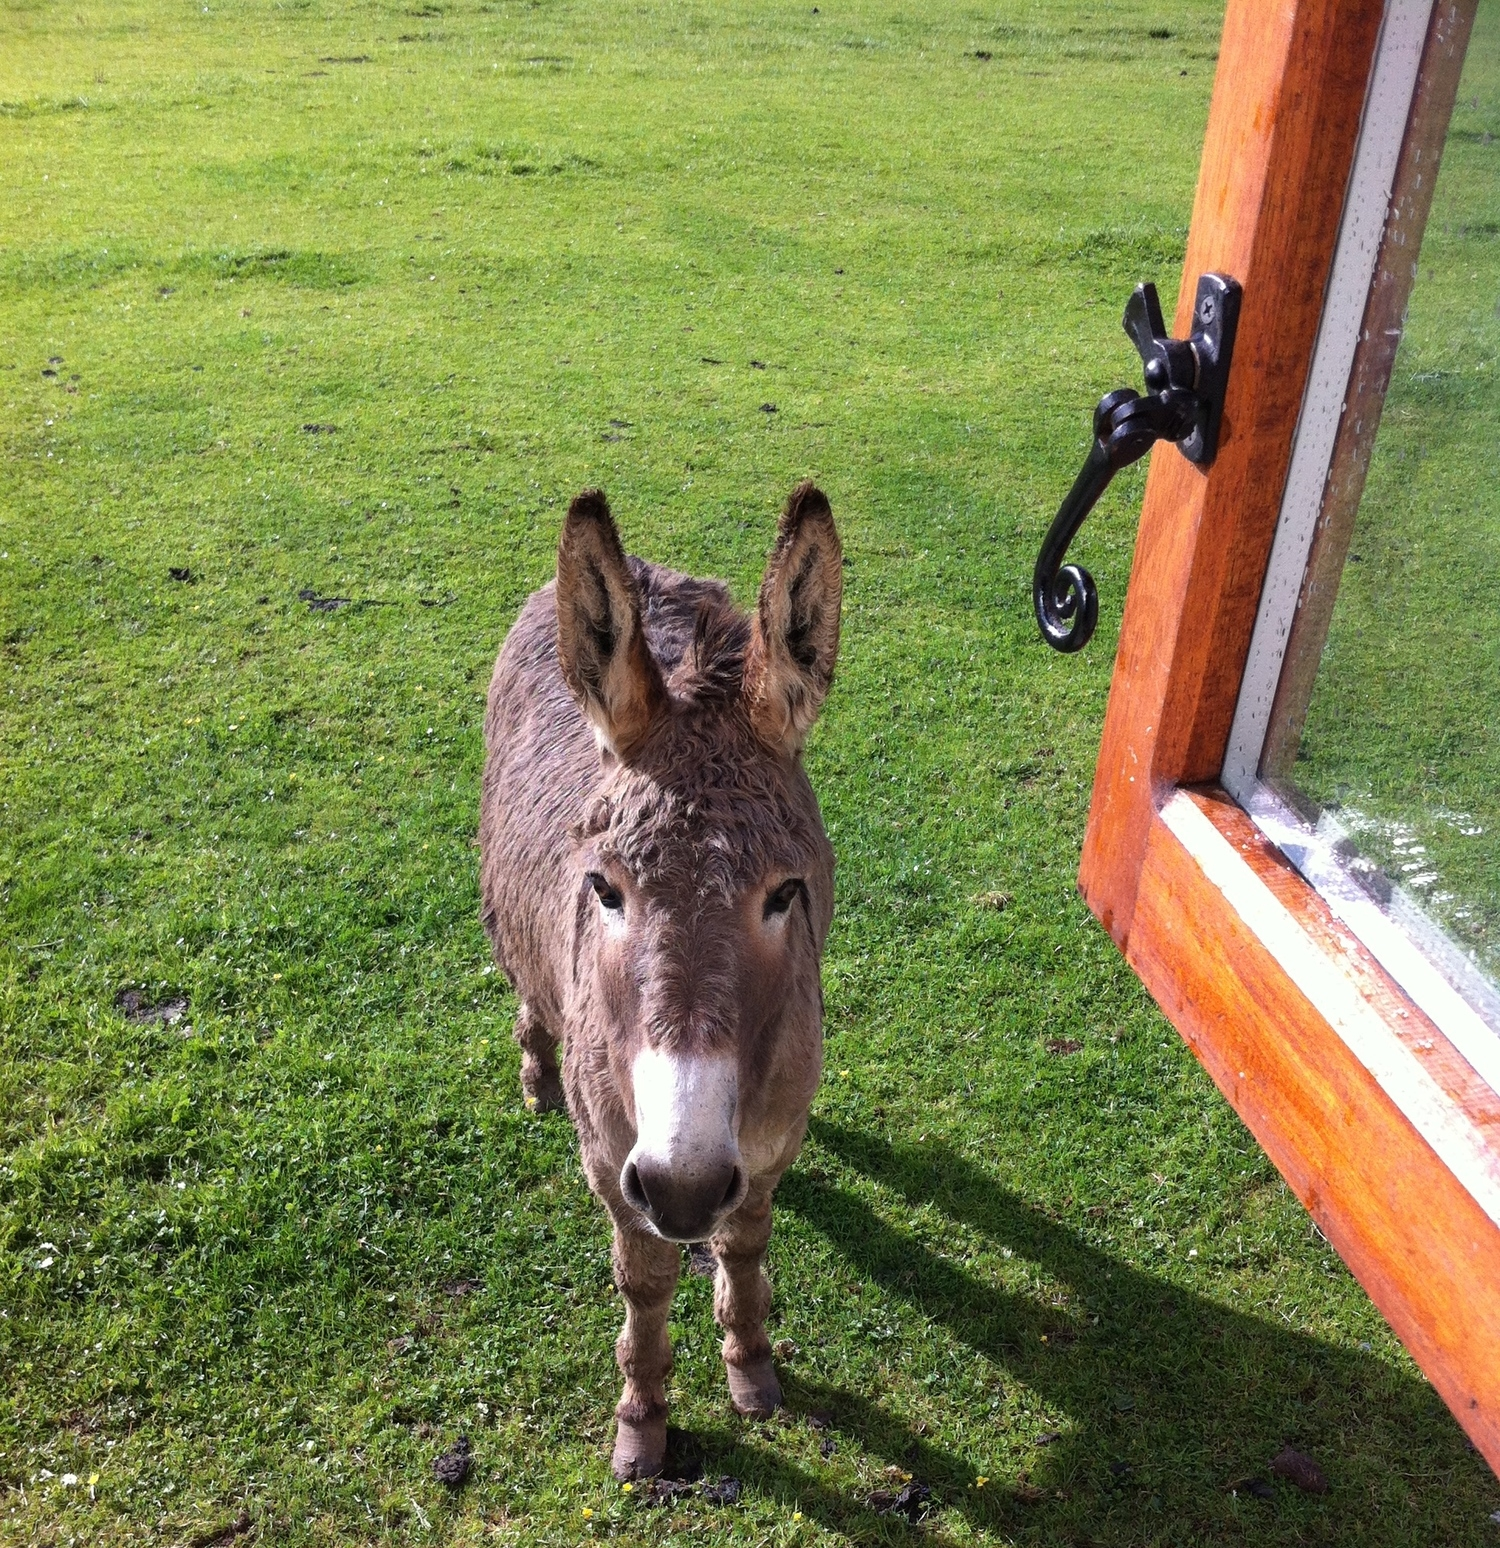 Dinky the Donkey at the kitchen window.